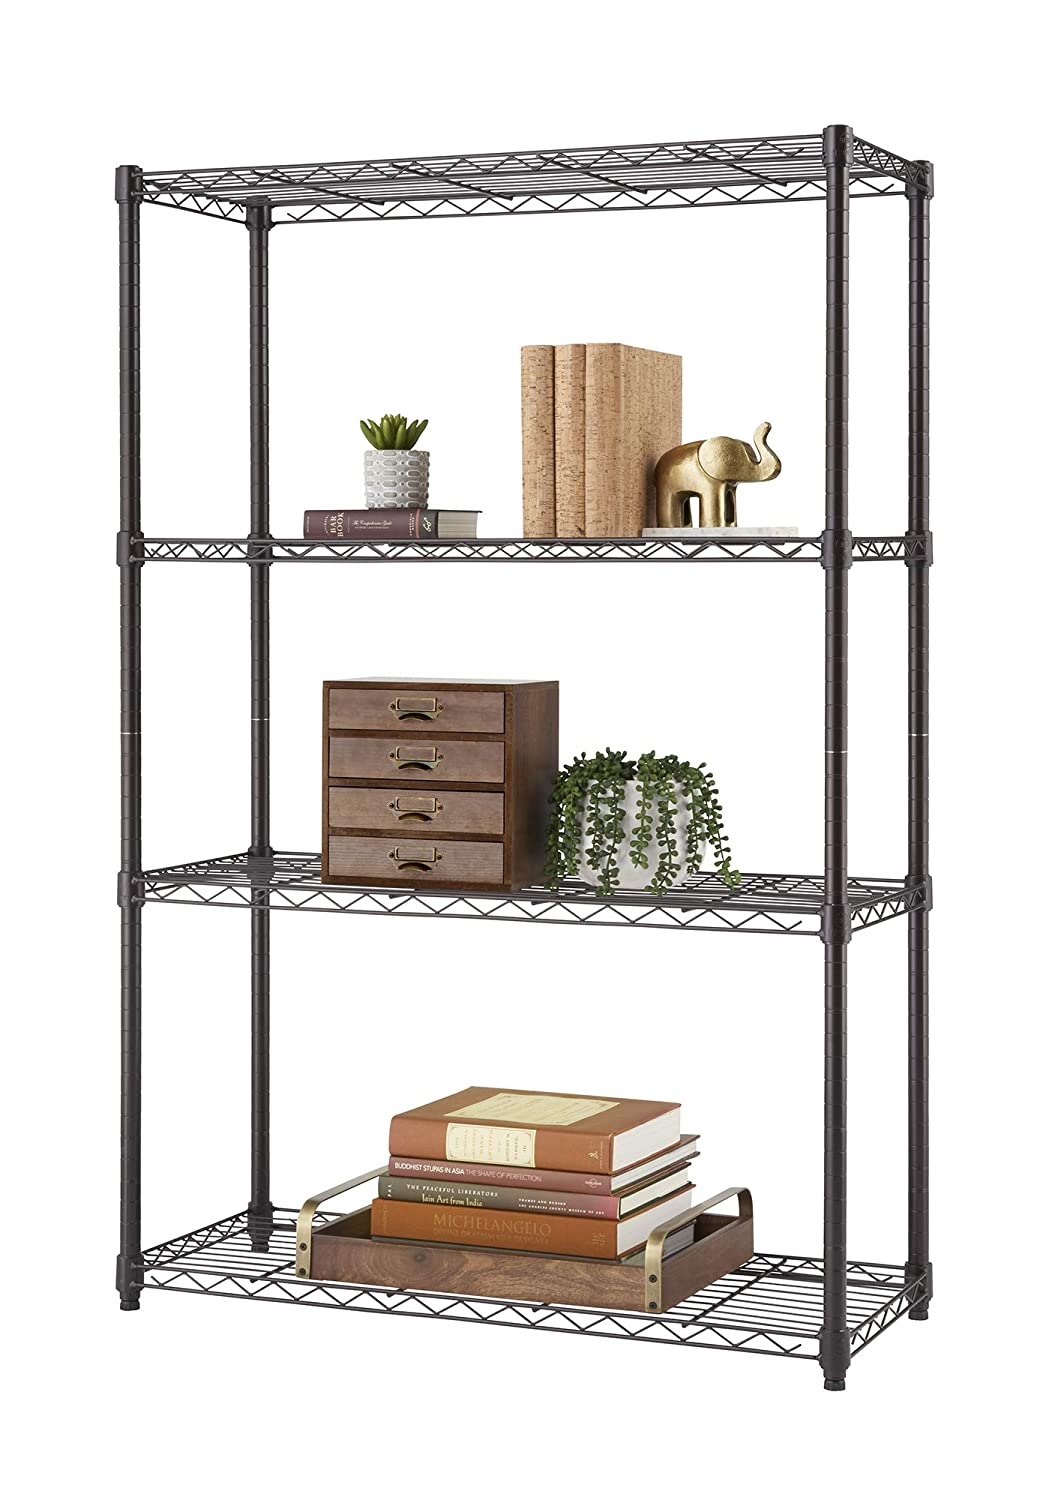 TRINITY 4-Tier NSF Wire Shelving Rack, 36 by 14 by 54-Inch, Bronze